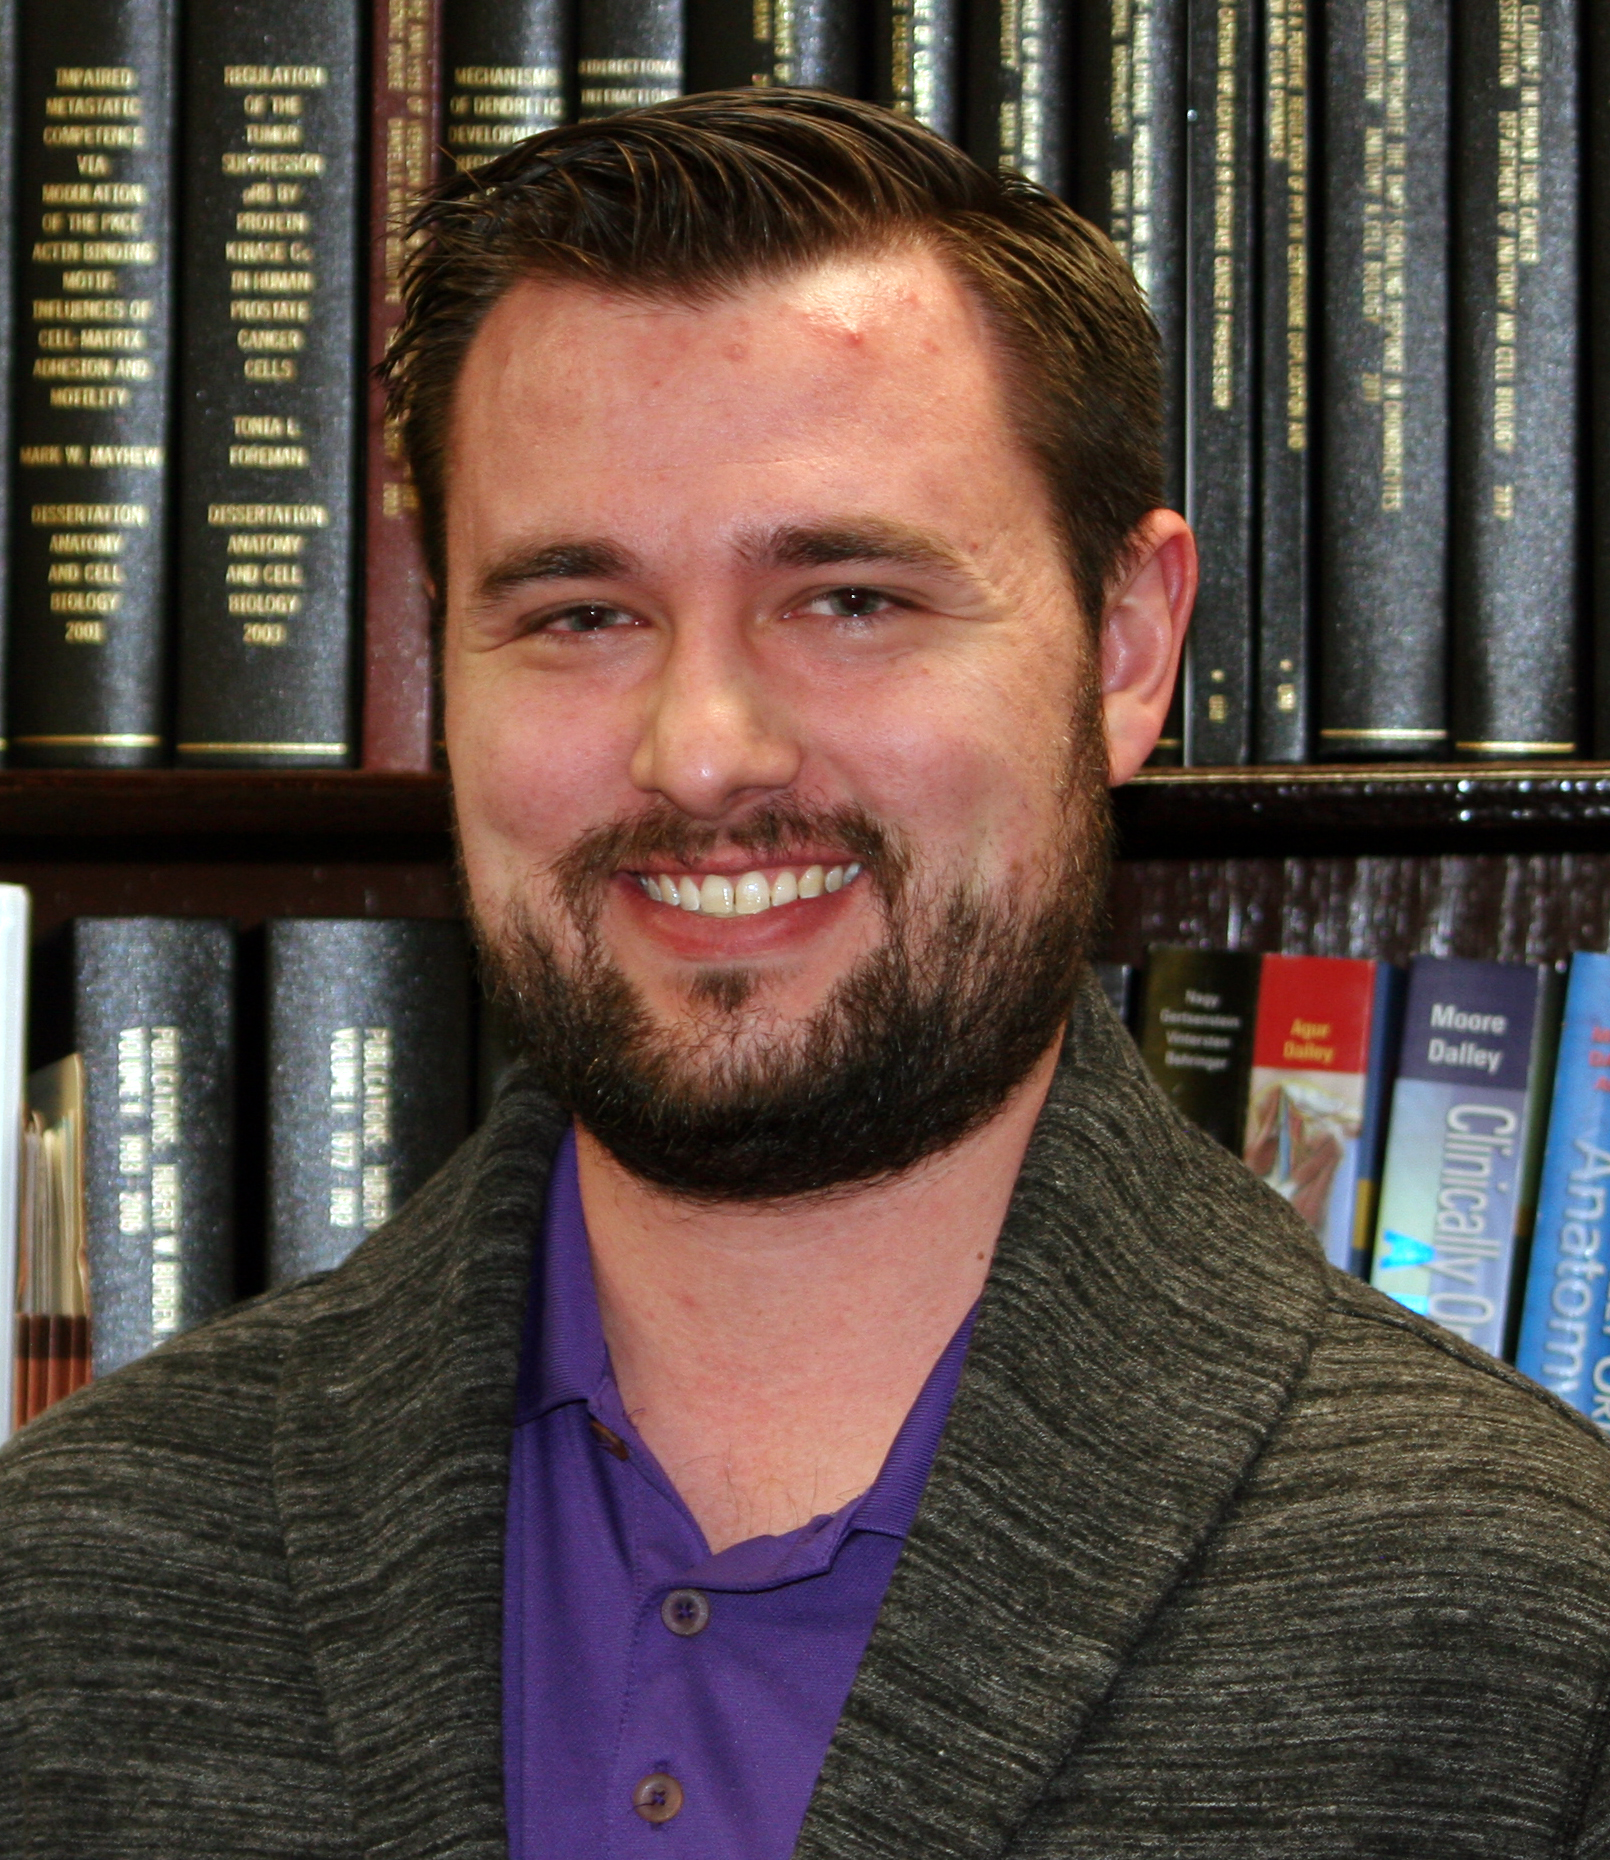 Taylor Johnson (Ph.D. student)   A Florida native, Taylor graduated from Southeastern University with a B.S. in Biology/Pre-Med. At Southeastern, he was involved in student life, lifeguarded, and ran cross-country. Upon graduating, Taylor interned for GTD Scientific and taught high school science courses. He then attended the University of Central Florida (UCF) and earned Masters Degrees in Biotechnology and in Biomedical Sciences. Taylor taught extensively at UCF and conducted research in the Metabolic and Cardiovascular division under Dr. Dinender Singla, focusing on cancer drug-induced cardiac and skeletal muscle remodeling. He is interested in researching metabolic regulators of spermatogenesis and relationships between diets and metabolic diseases with male reproductive health. He enjoys volunteering and anything sports-related.   Email:  johnsontayl18@students.ecu.edu